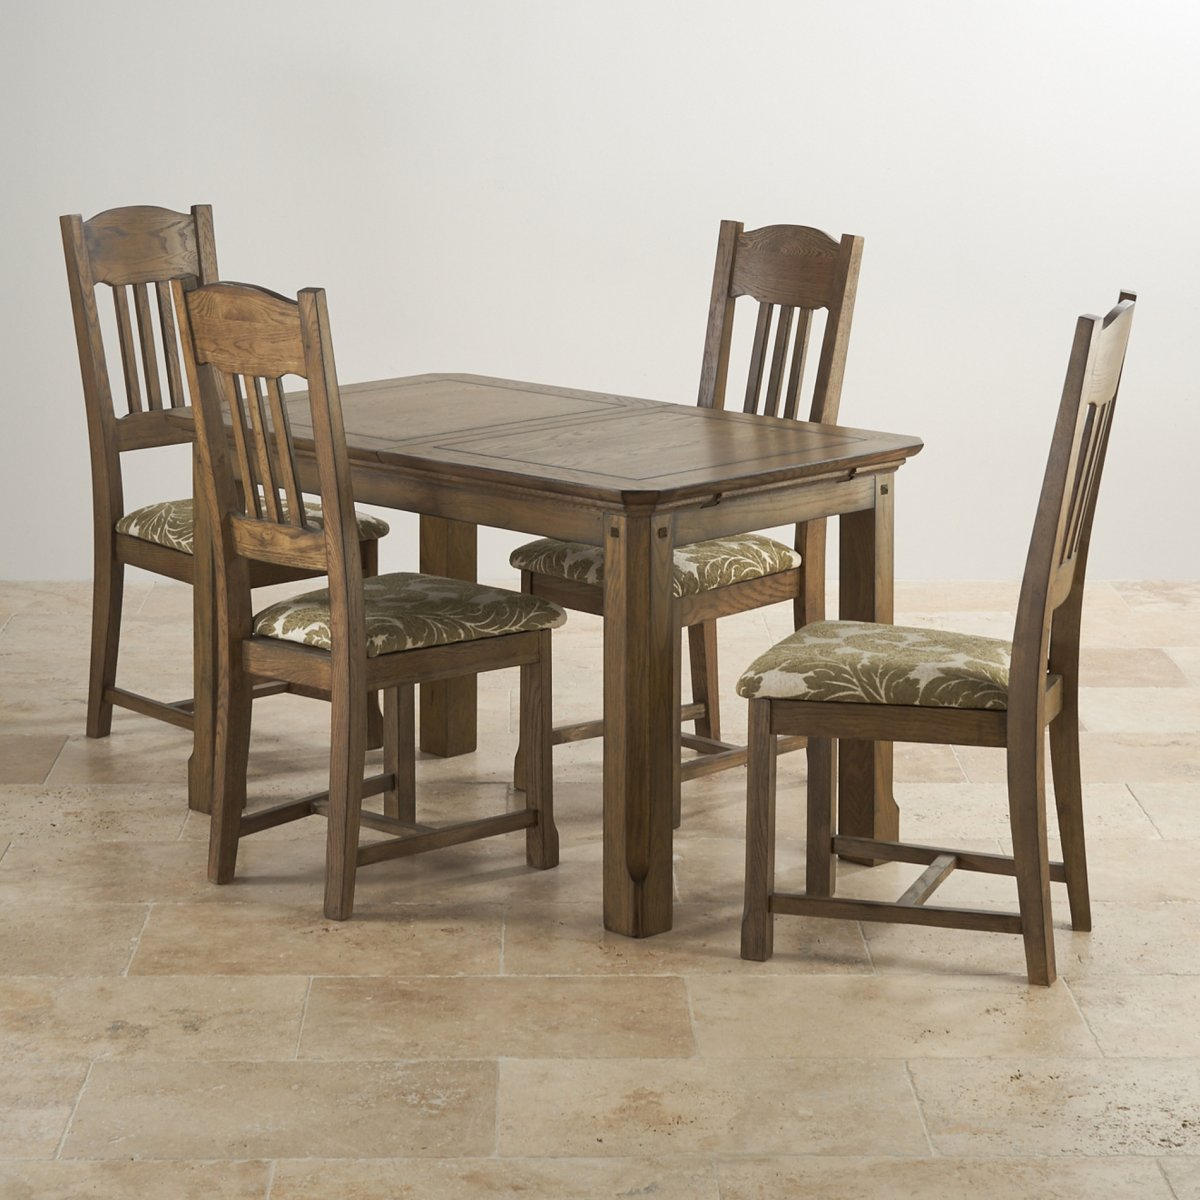 Manor House Extending Dining Set In Oak: Table + 4 Chairs